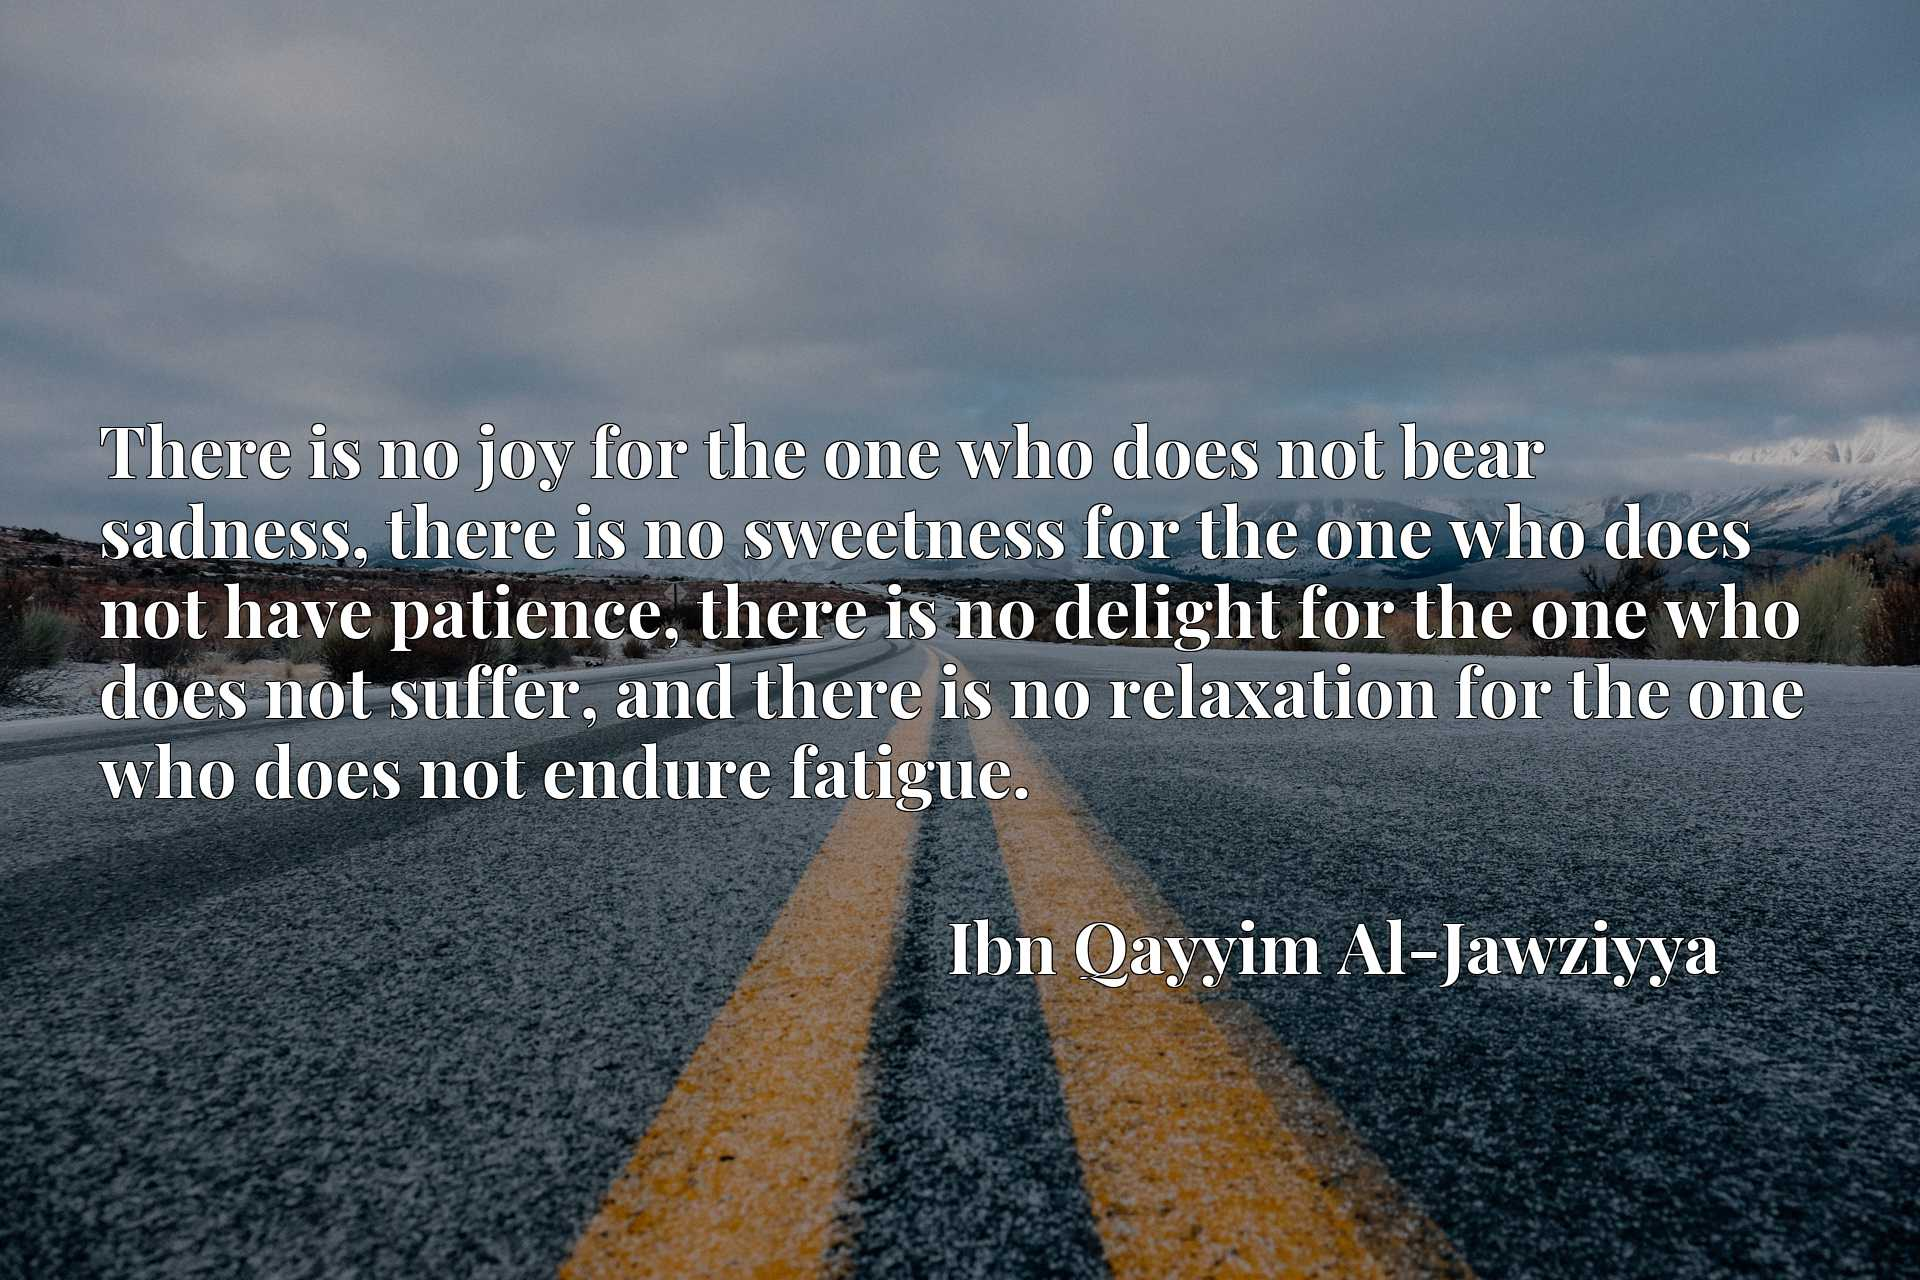 There is no joy for the one who does not bear sadness, there is no sweetness for the one who does not have patience, there is no delight for the one who does not suffer, and there is no relaxation for the one who does not endure fatigue.